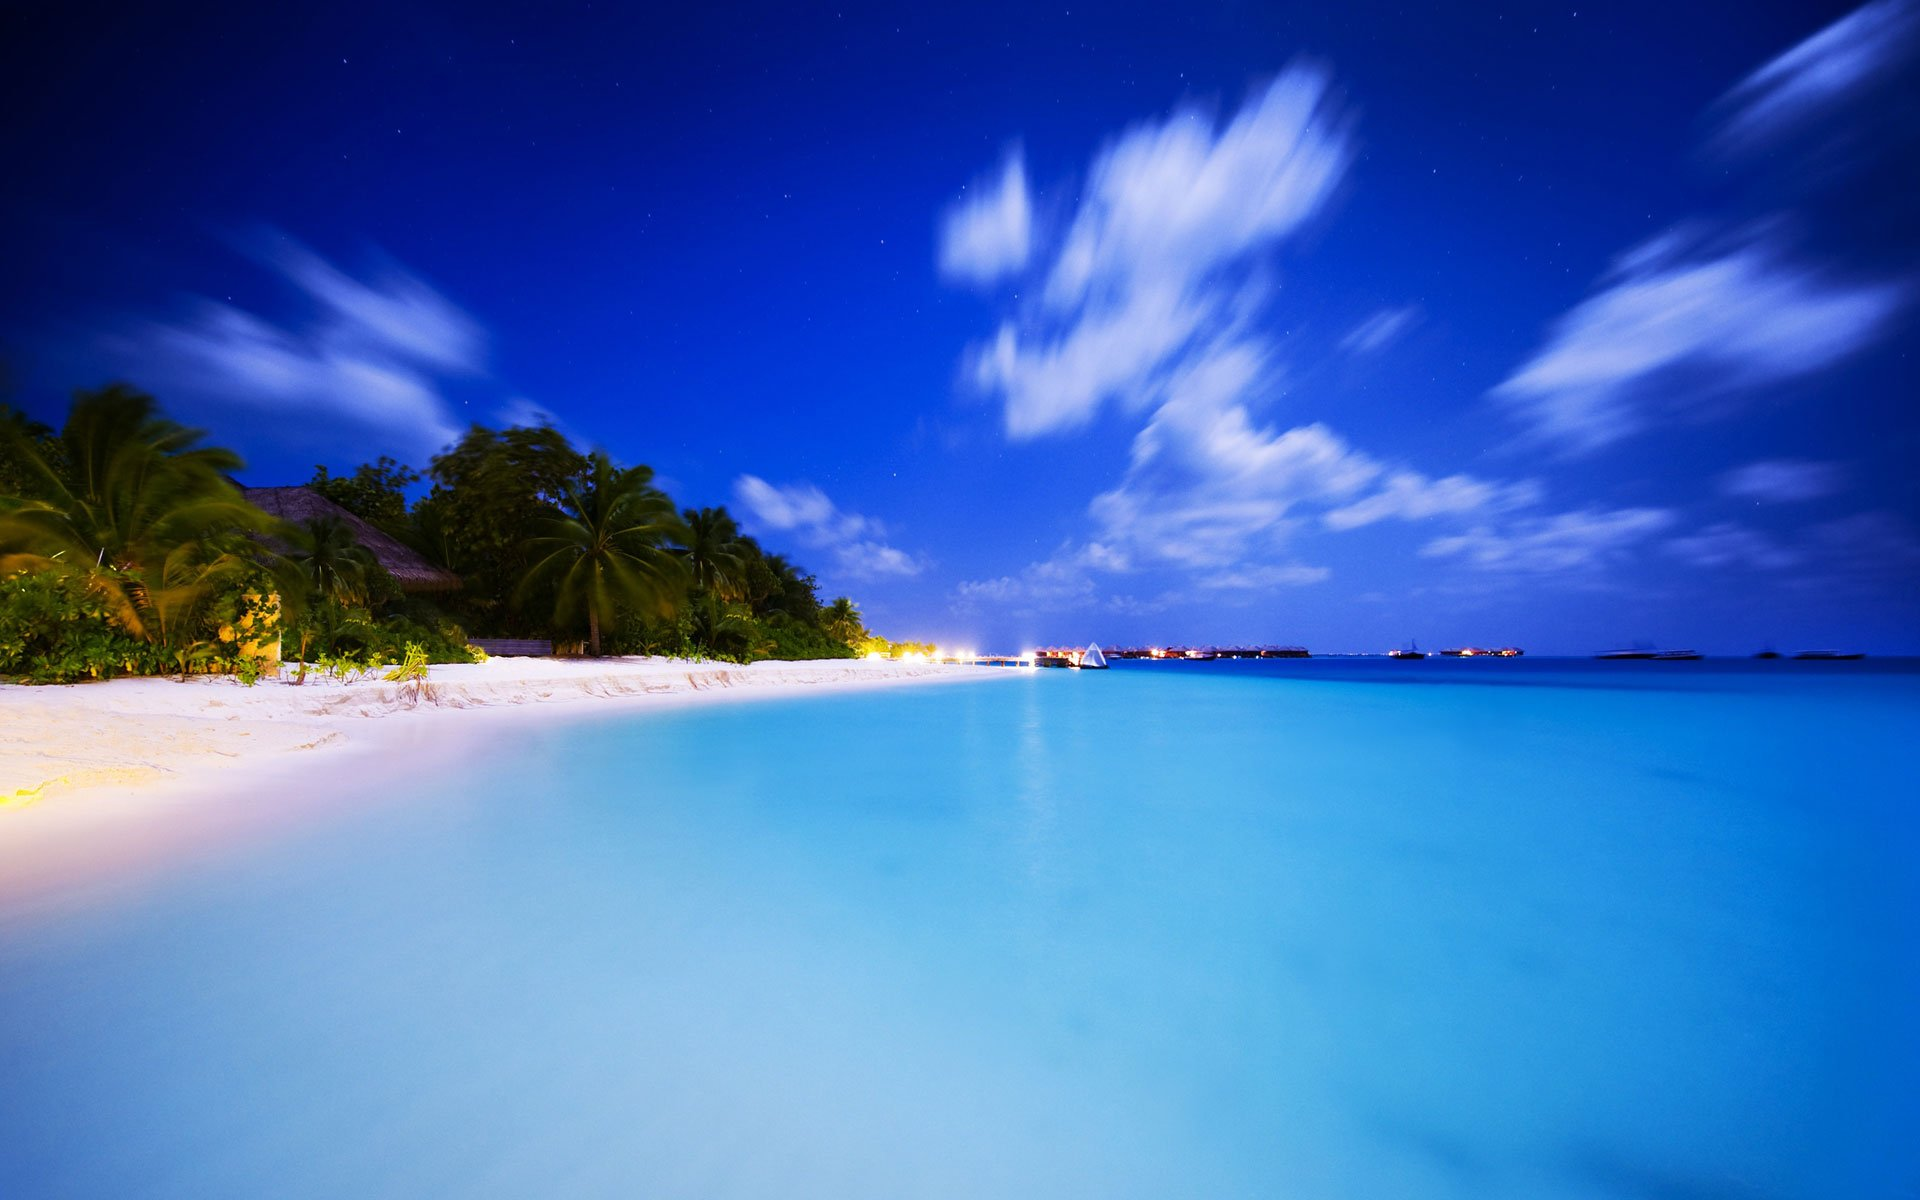 Tropical Island Wallpaper 8879 Hd Wallpapers in Beach   Imagescicom 1920x1200